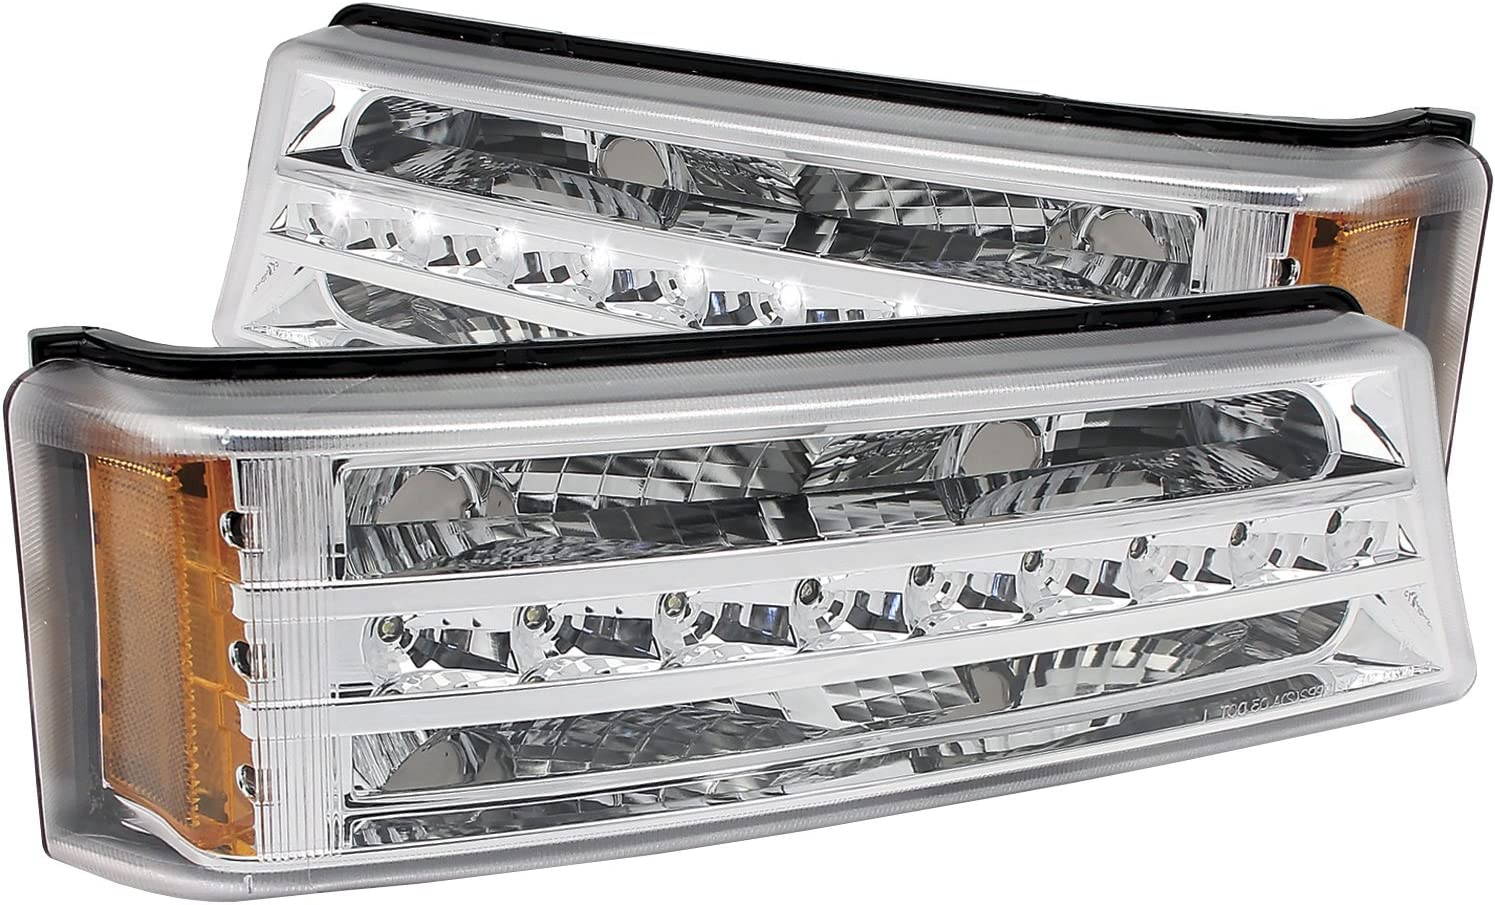 Anzo USA 511066 Chrome LED Silverado 25% OFF Signal Light 4 years warranty Chevy for